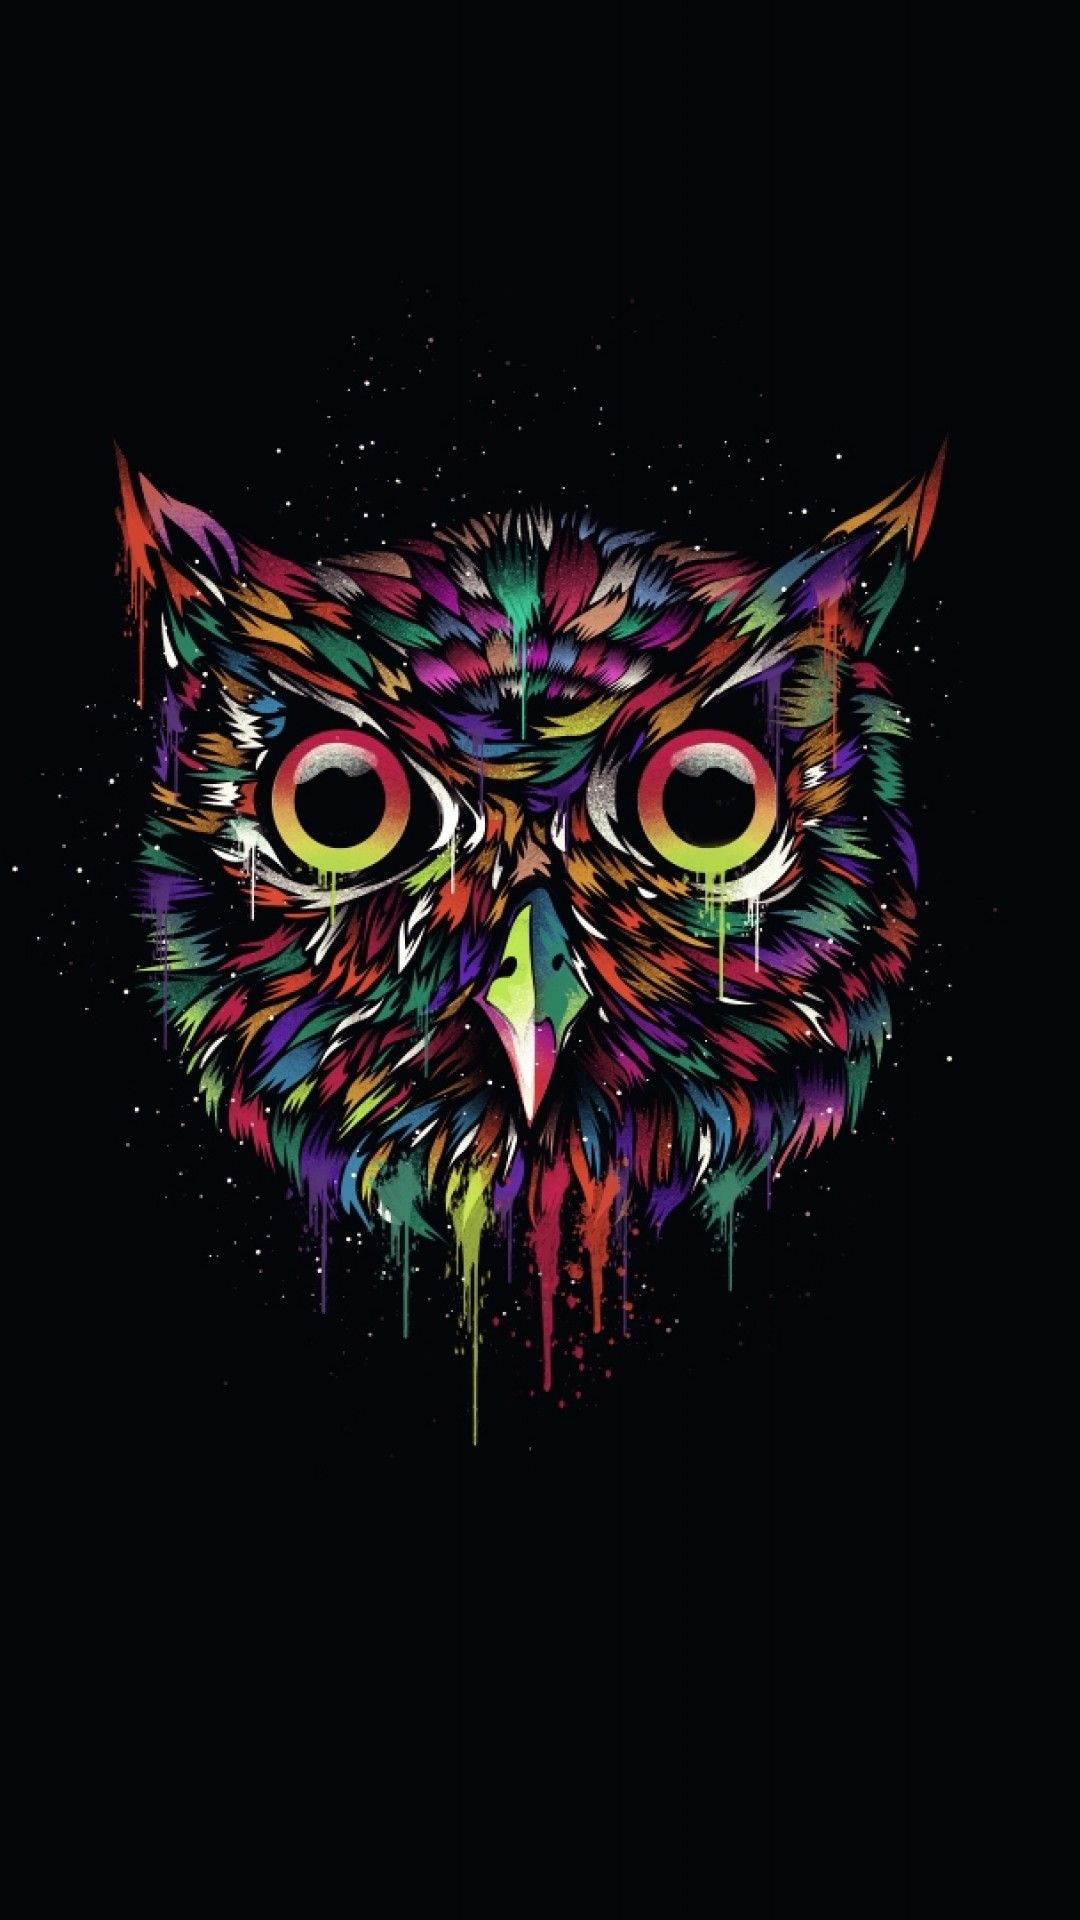 1080x1920 Owl Iphone Wallpaper (29+ images) on Genchi.info